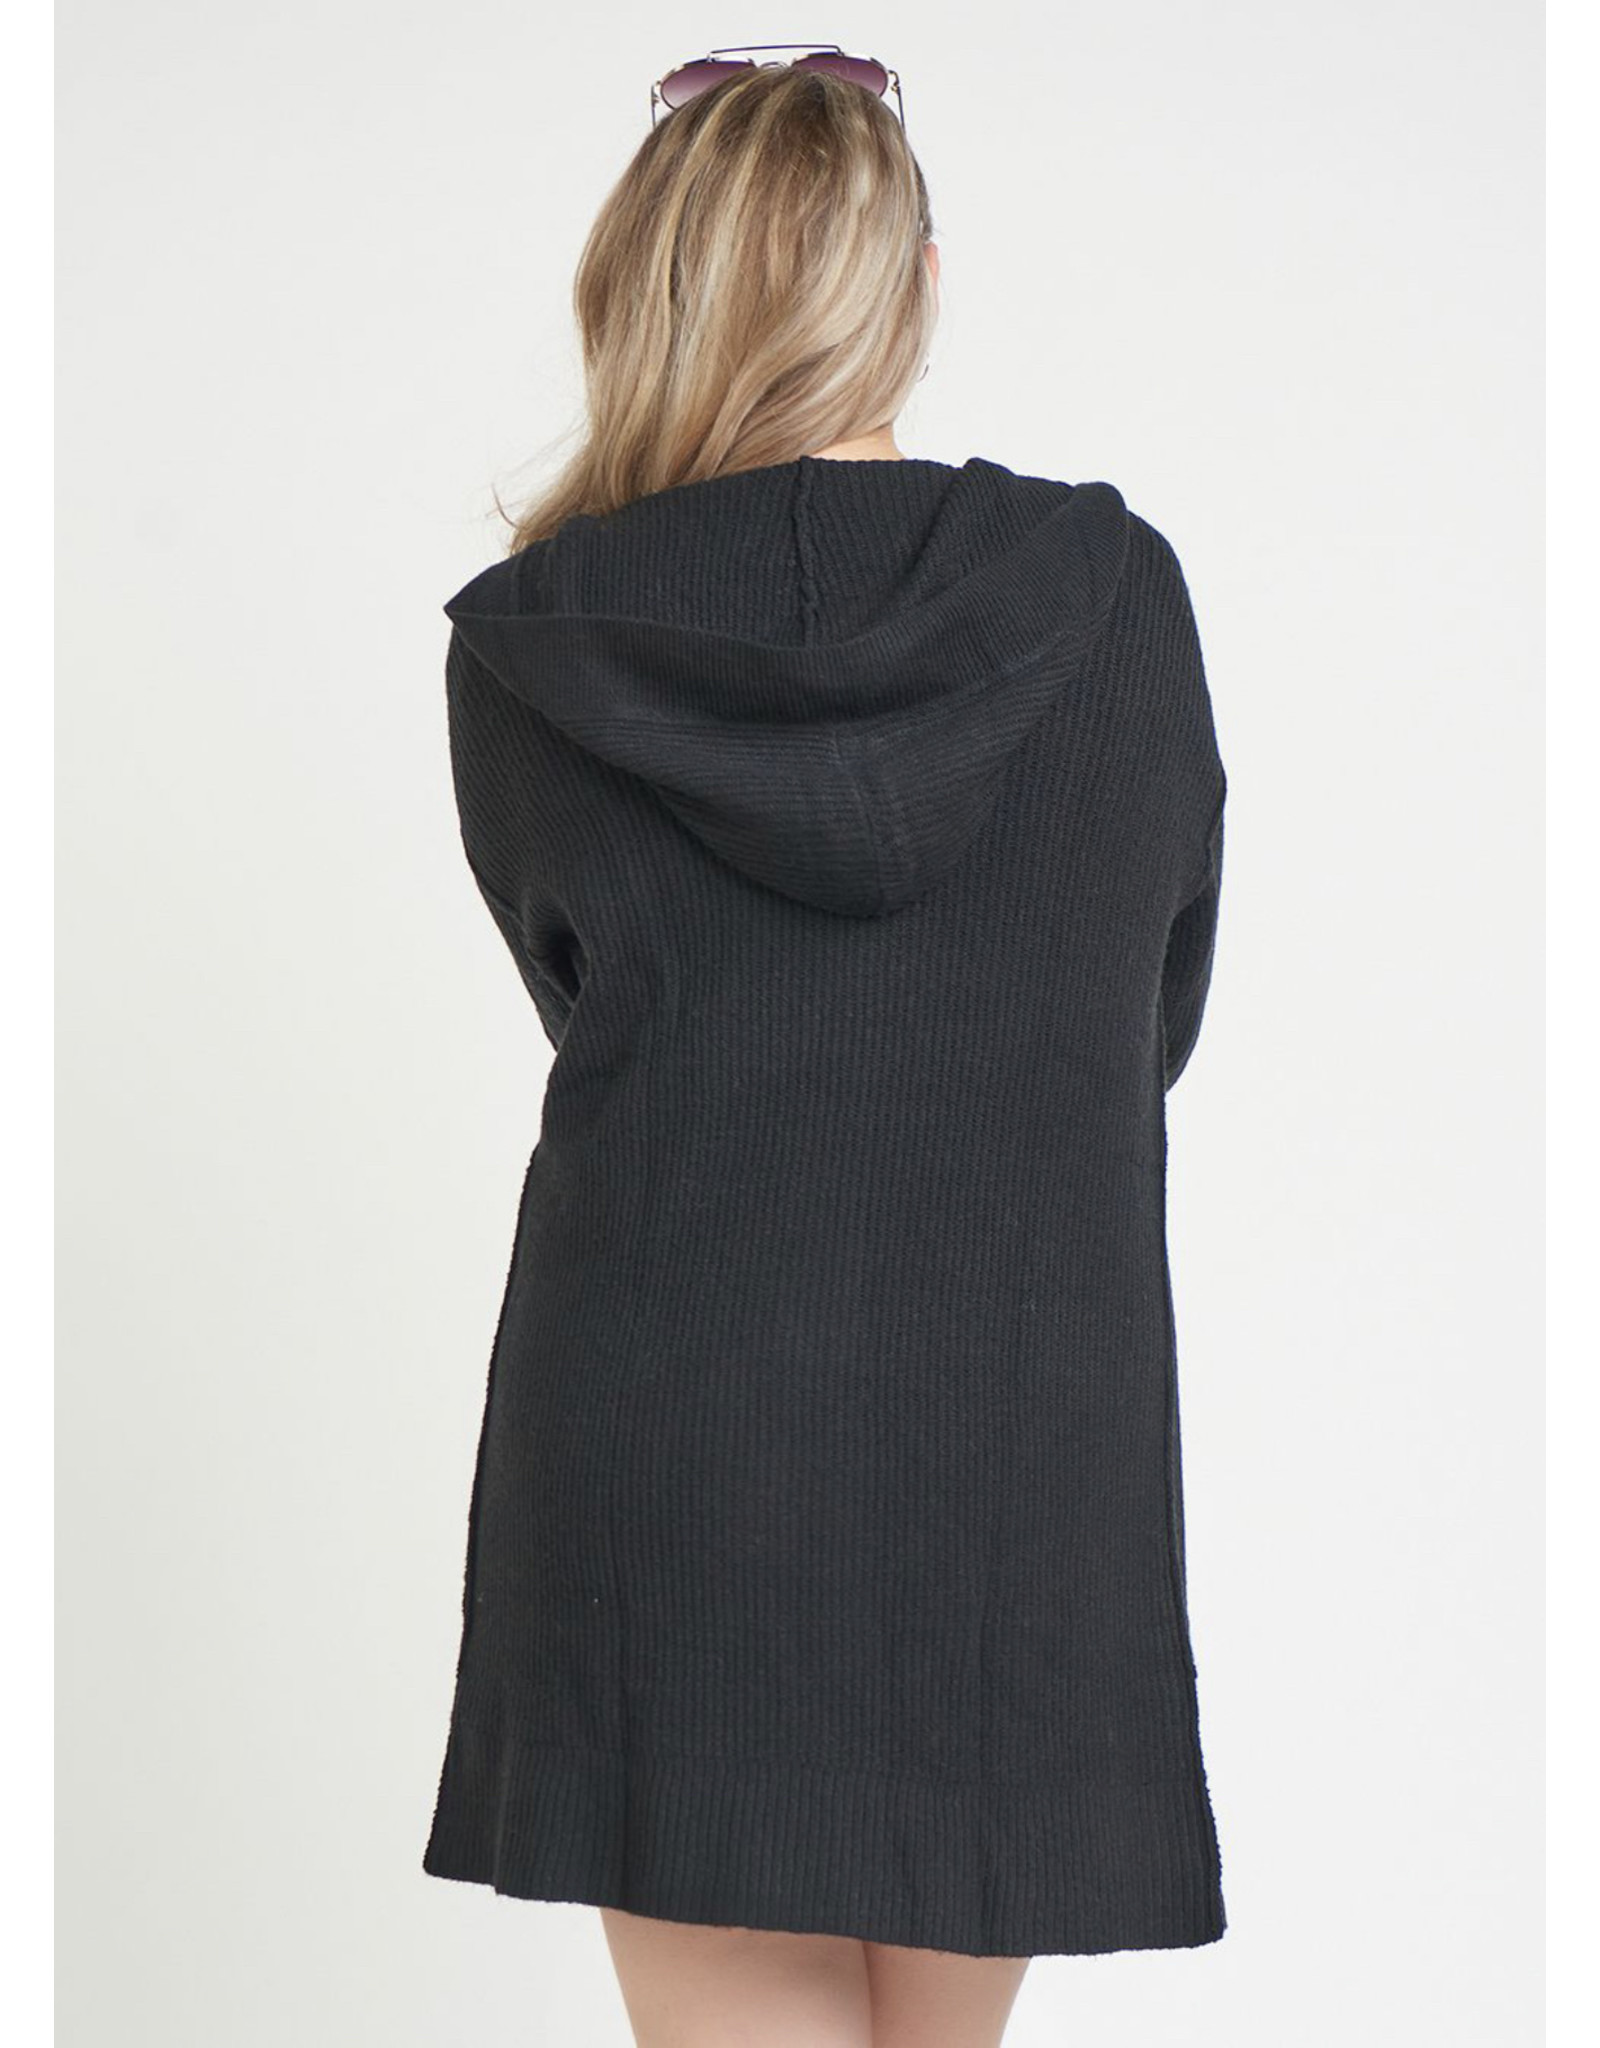 Open Front Hooded cardigan Sweater